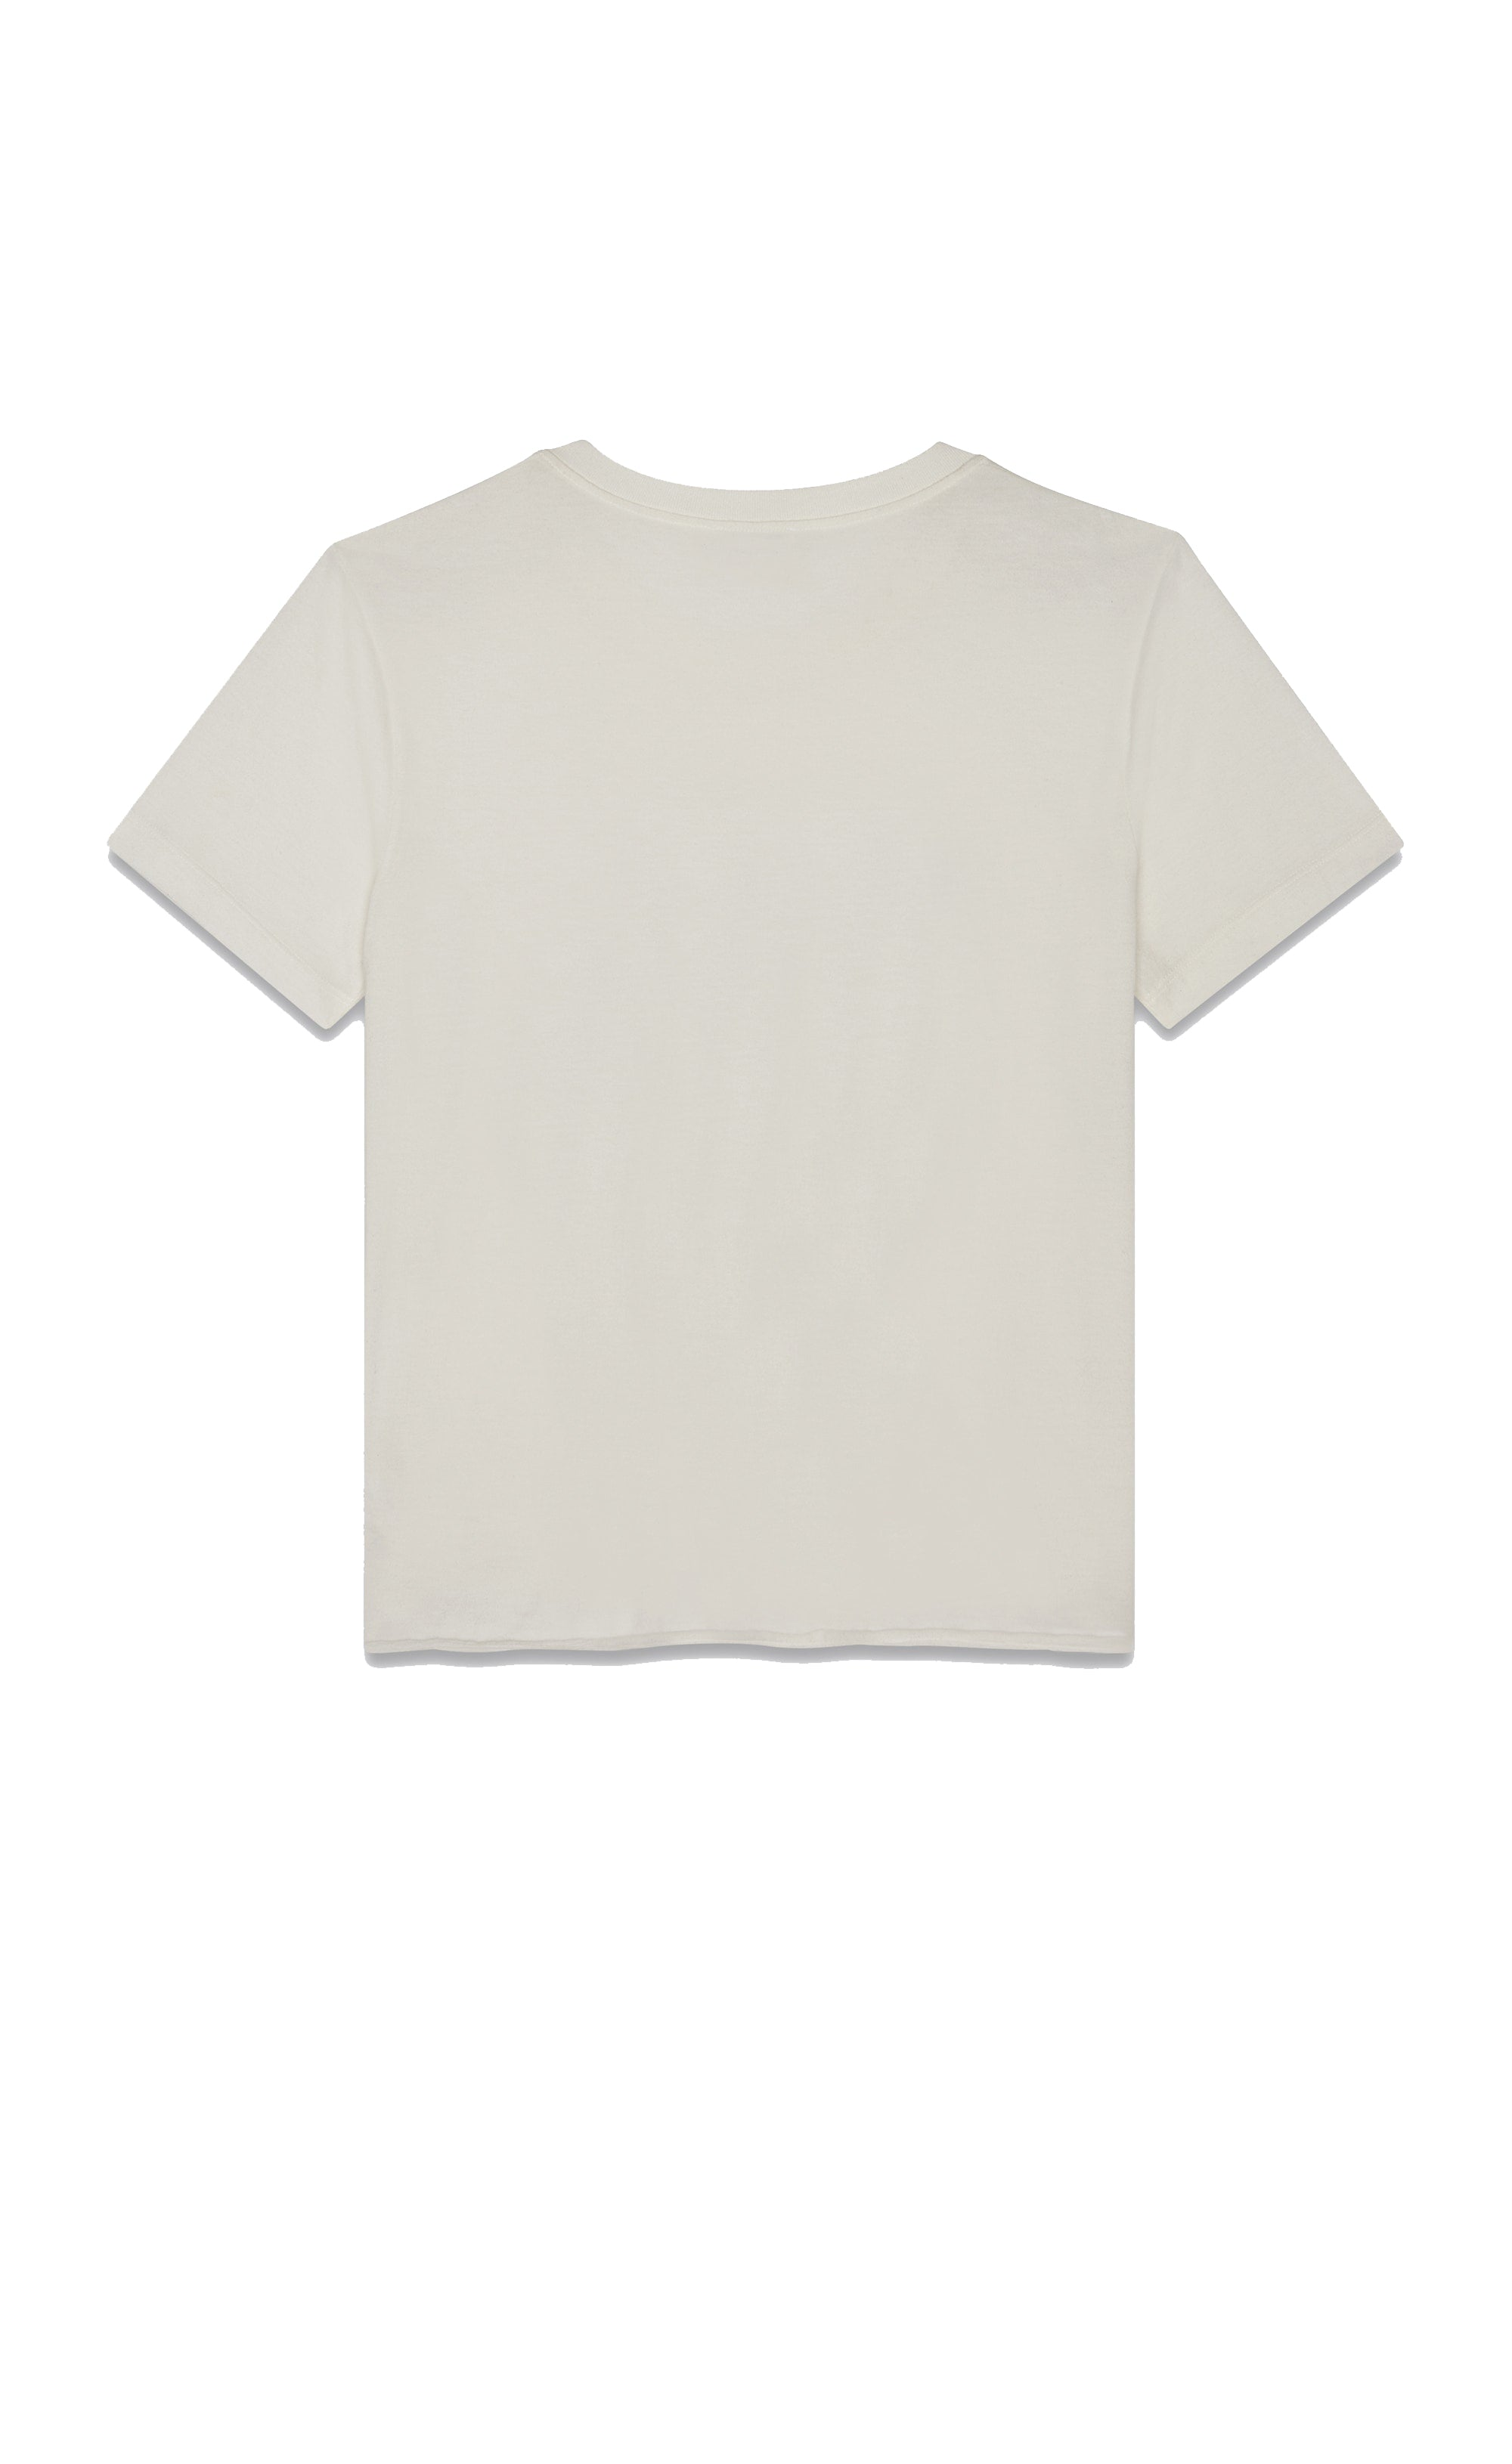 SAINT LAURENT POSTER T-SHIRT